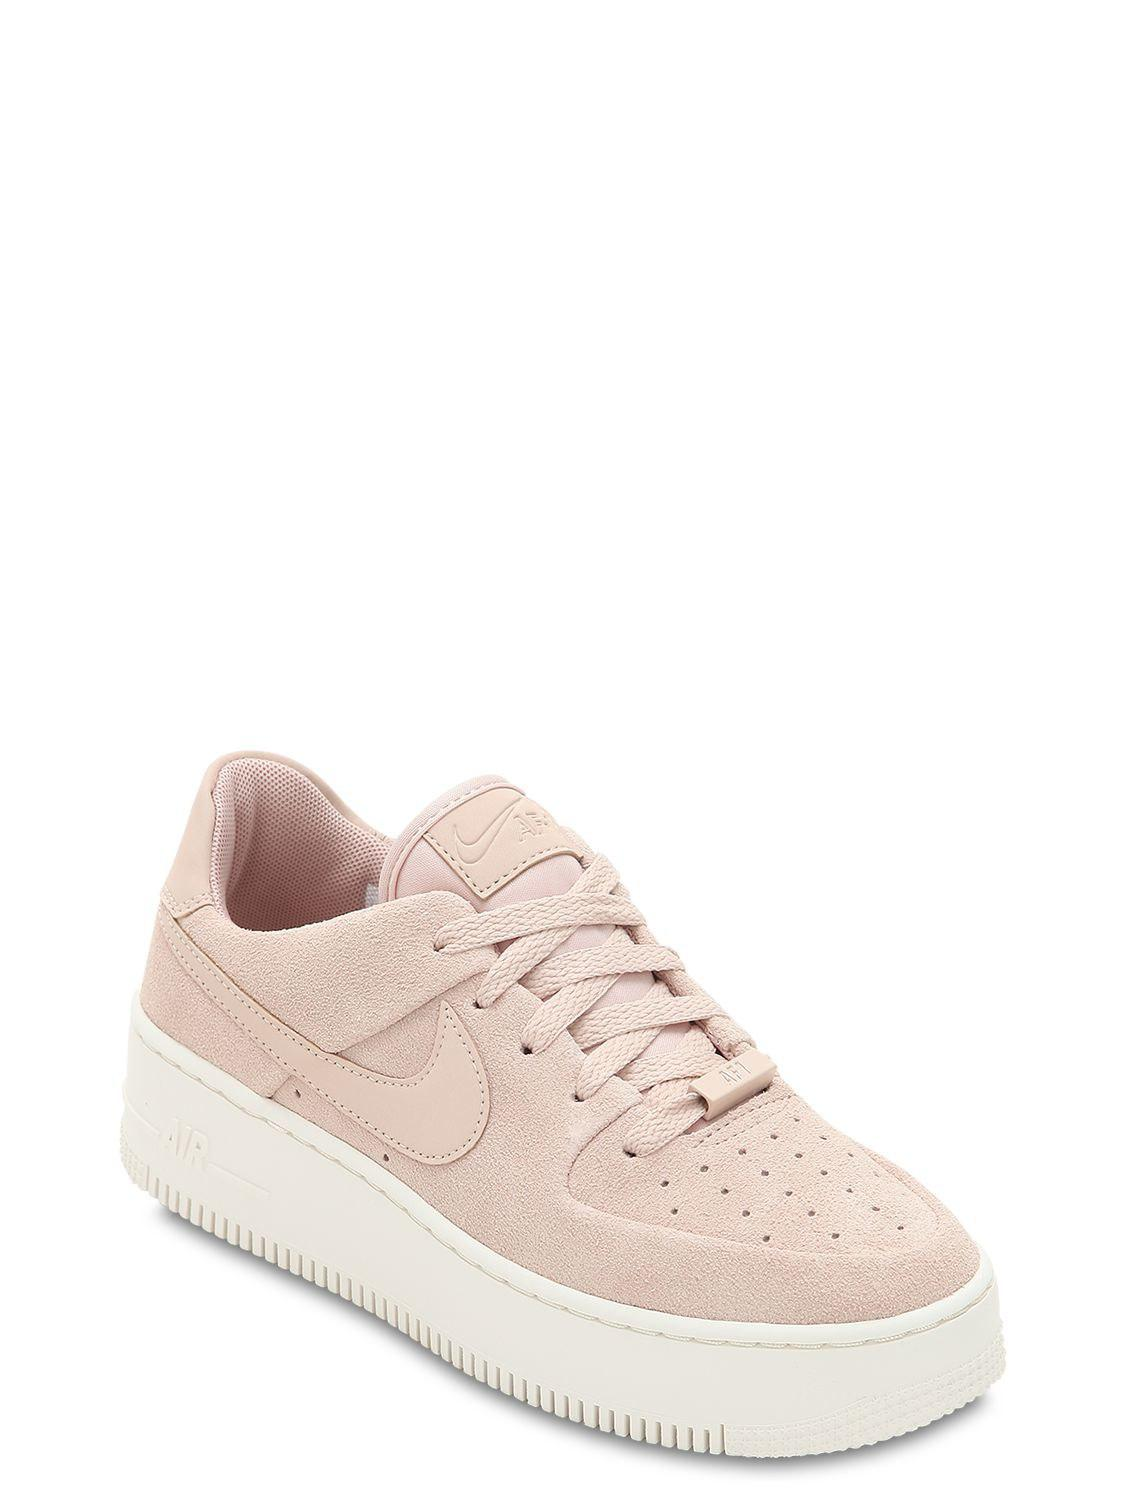 d00e01d288e Lyst - Nike Air Force 1 Sage Xx Platform Sneakers in Pink